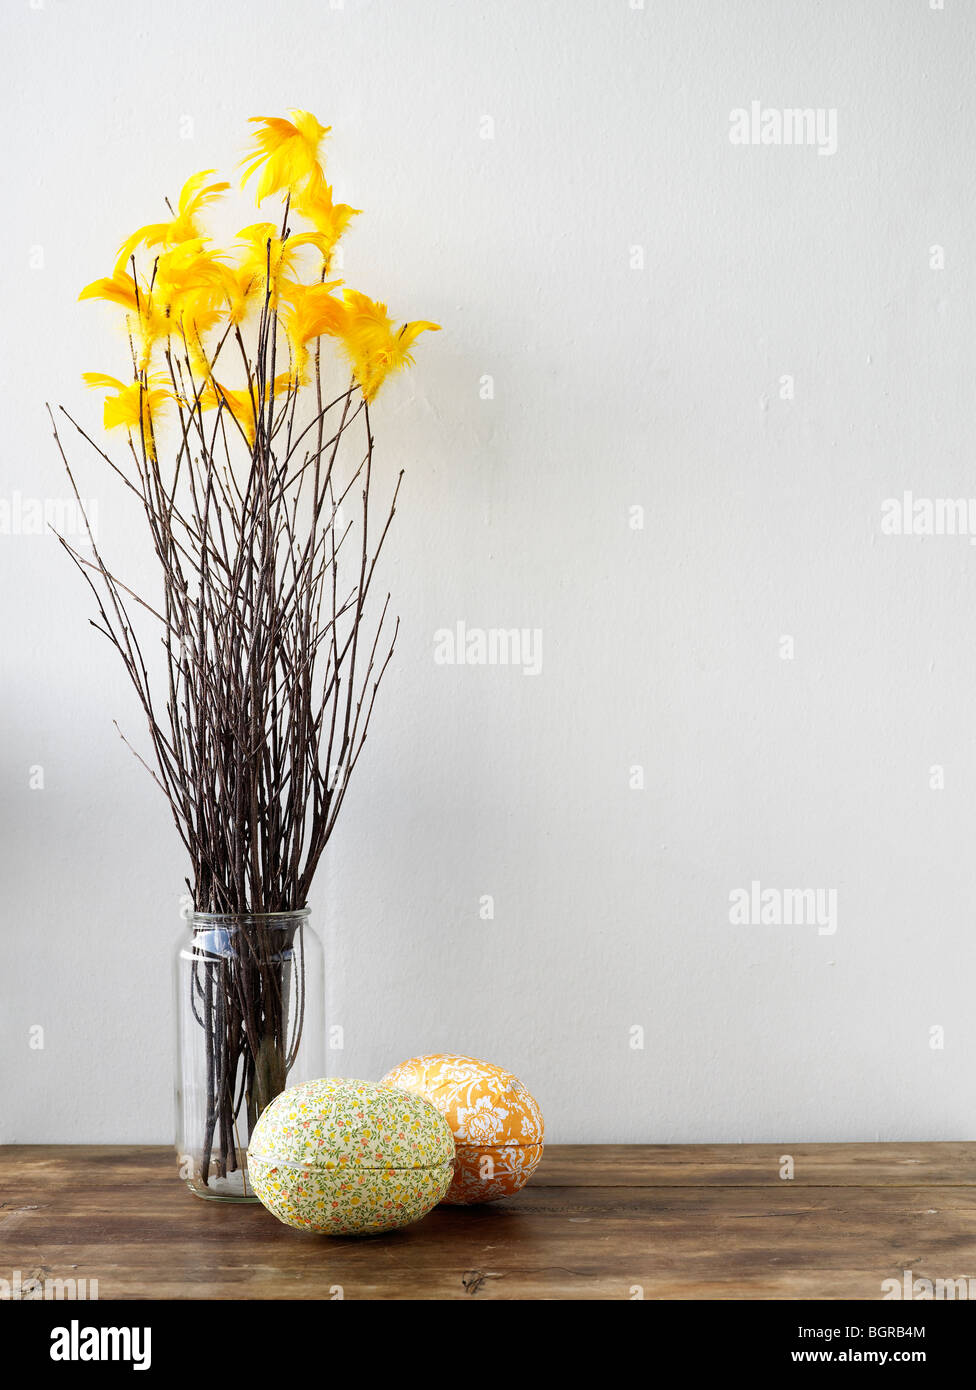 Easter eggs and twigs with feathers - Stock Image